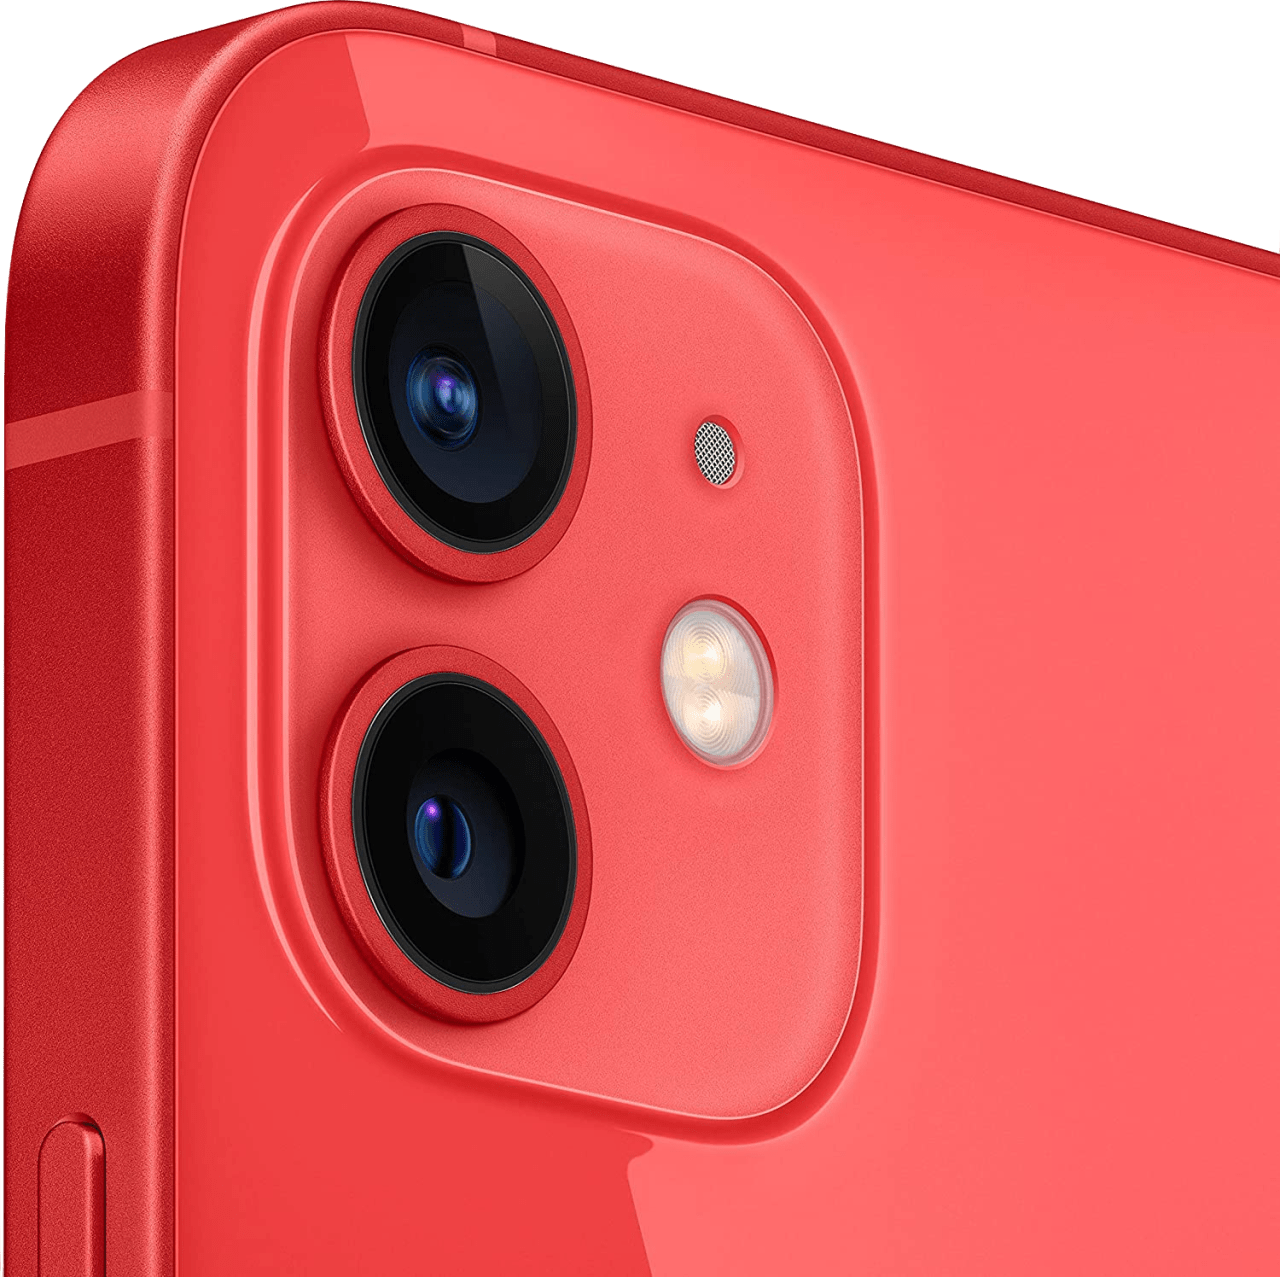 (Product)Red Apple iPhone 12 128GB.3